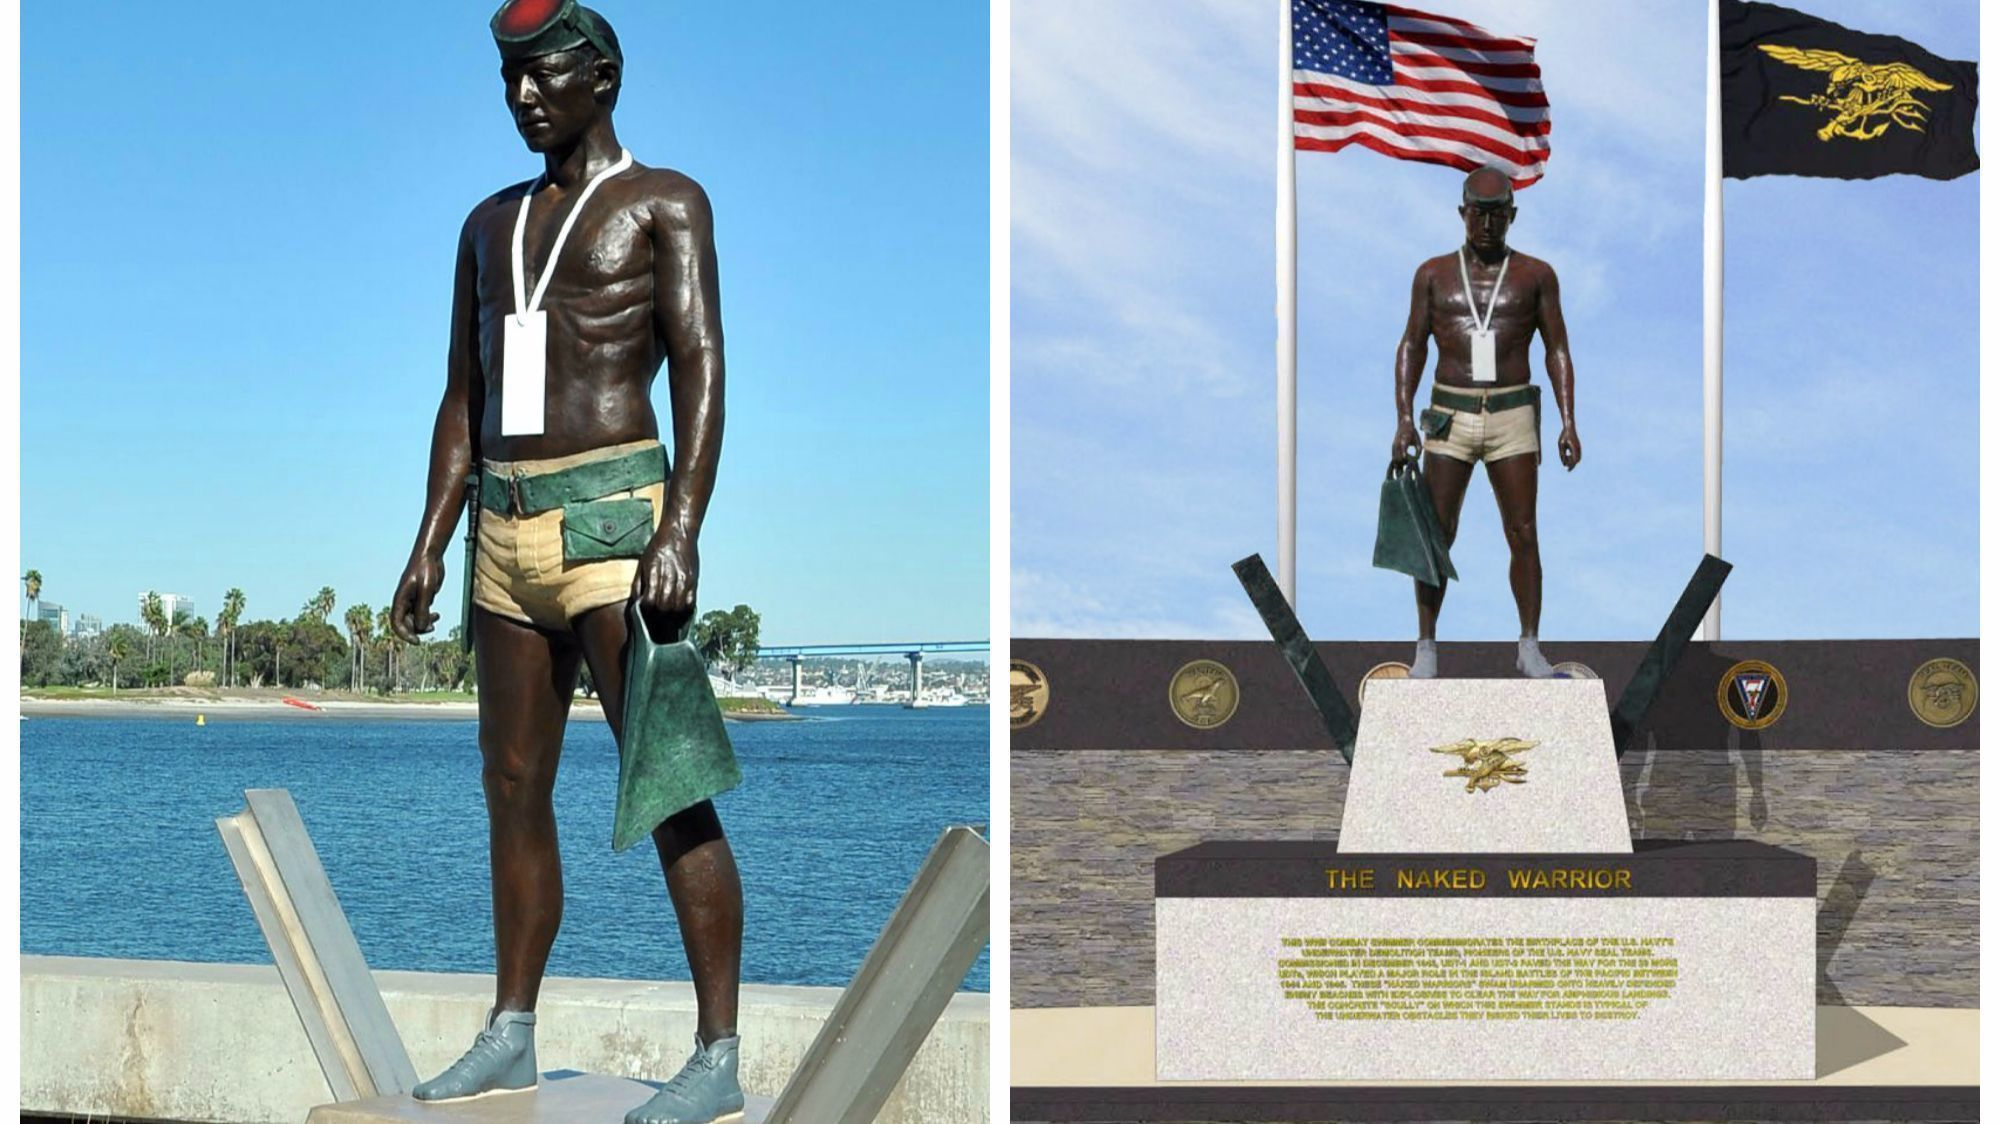 The Naked Warrior UDT Statue at the Navy SEAL Museum